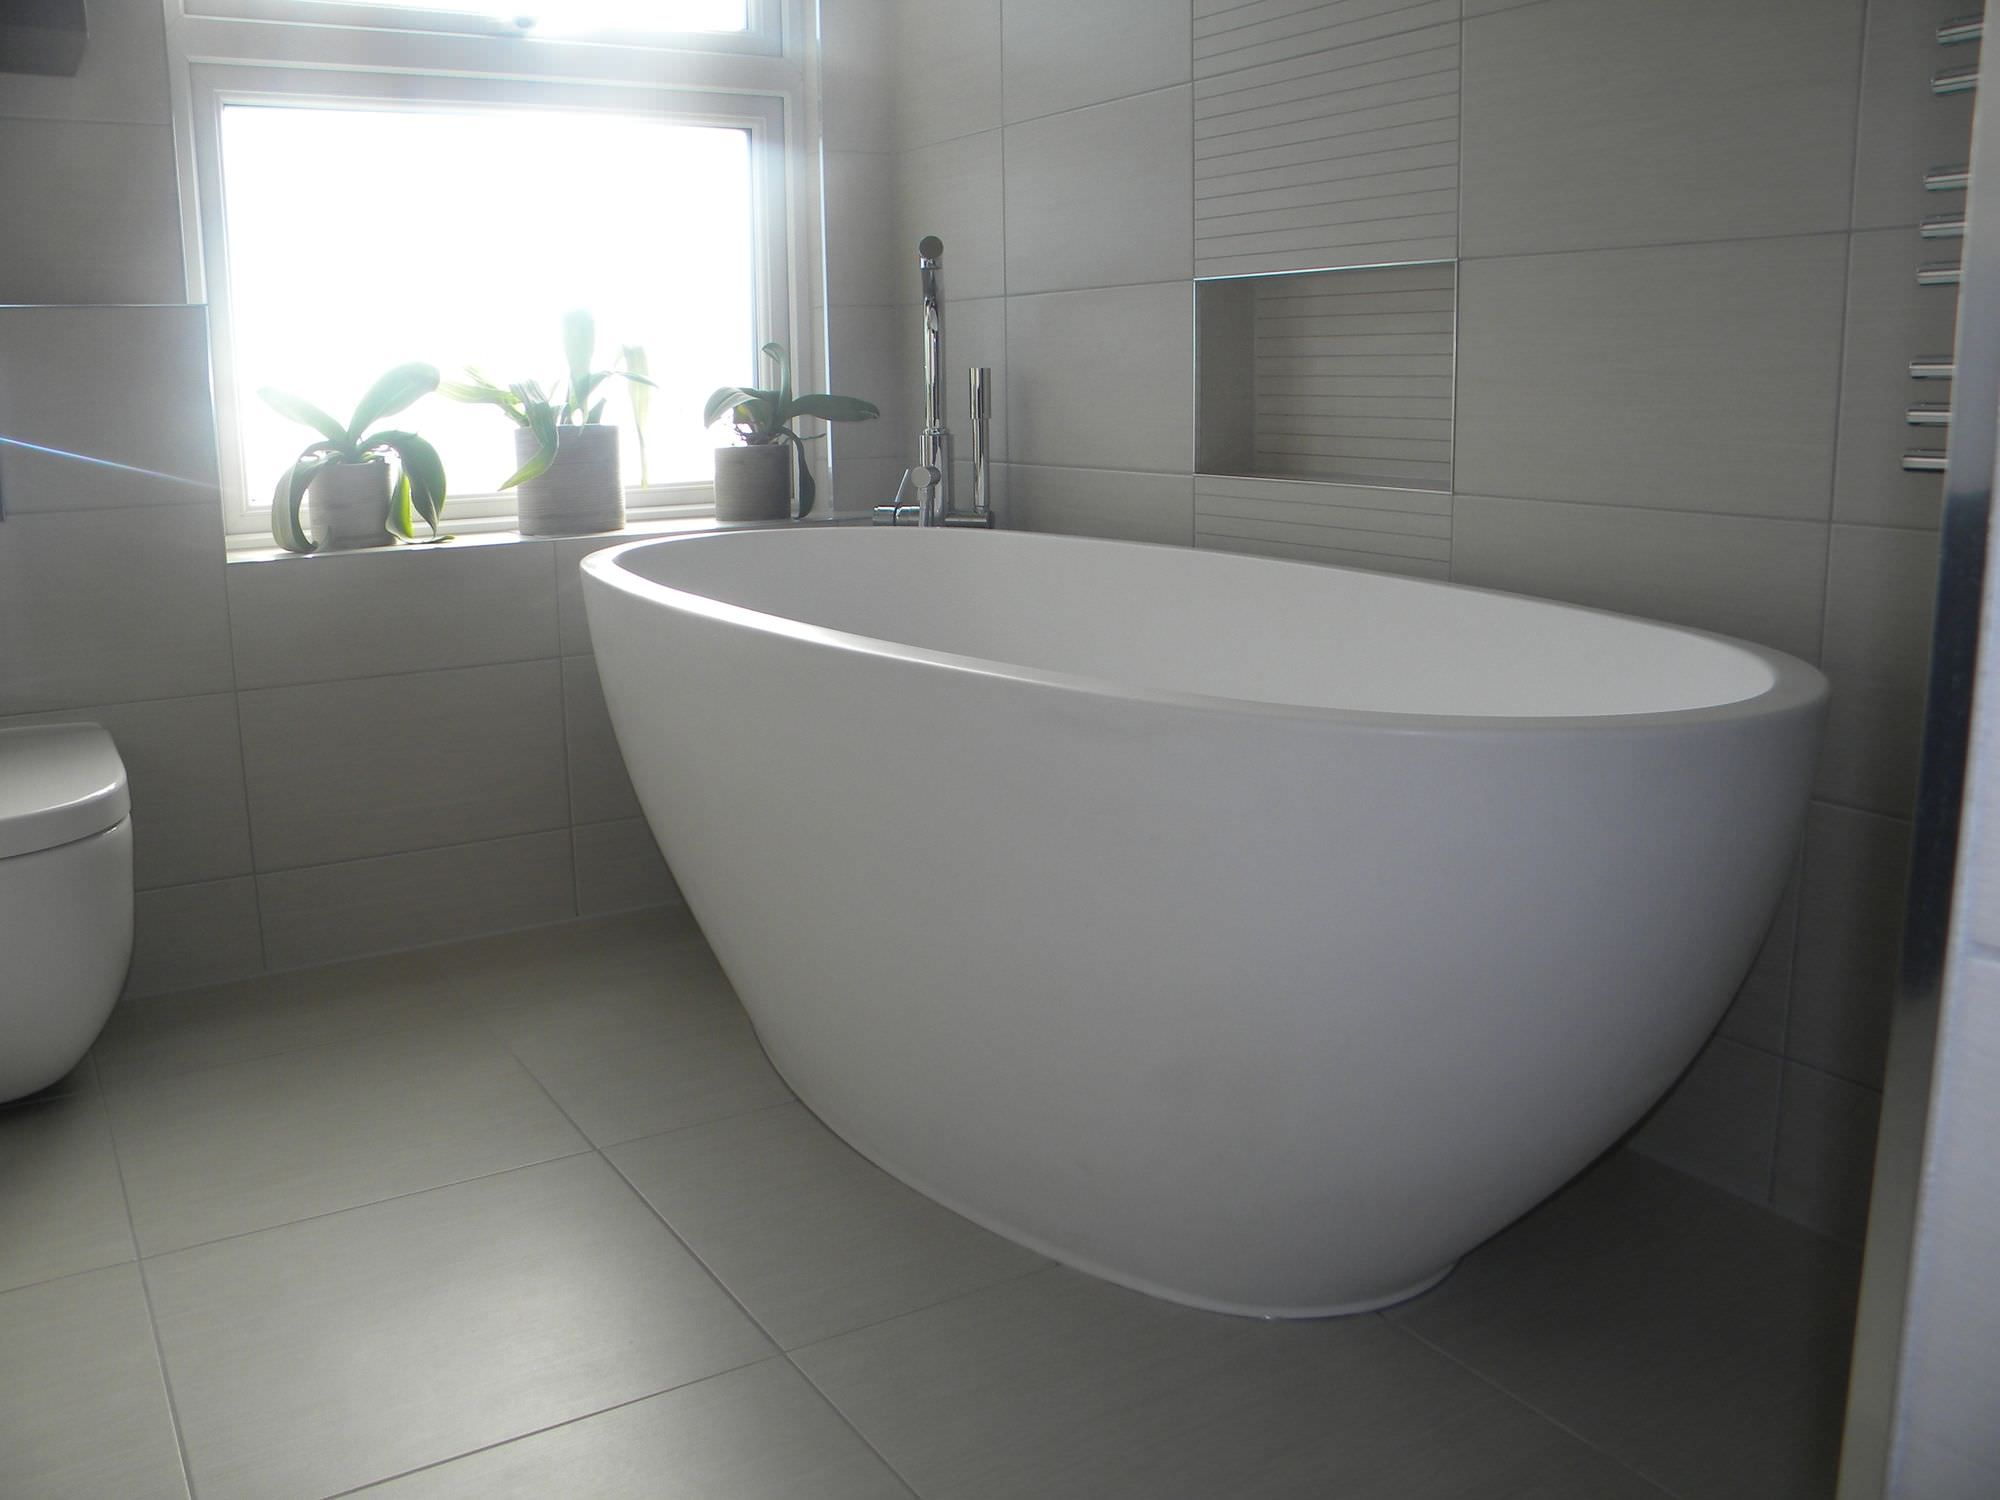 g-astonishing-small-apartment-bathtubs-small-bathtubs-with-jets ...